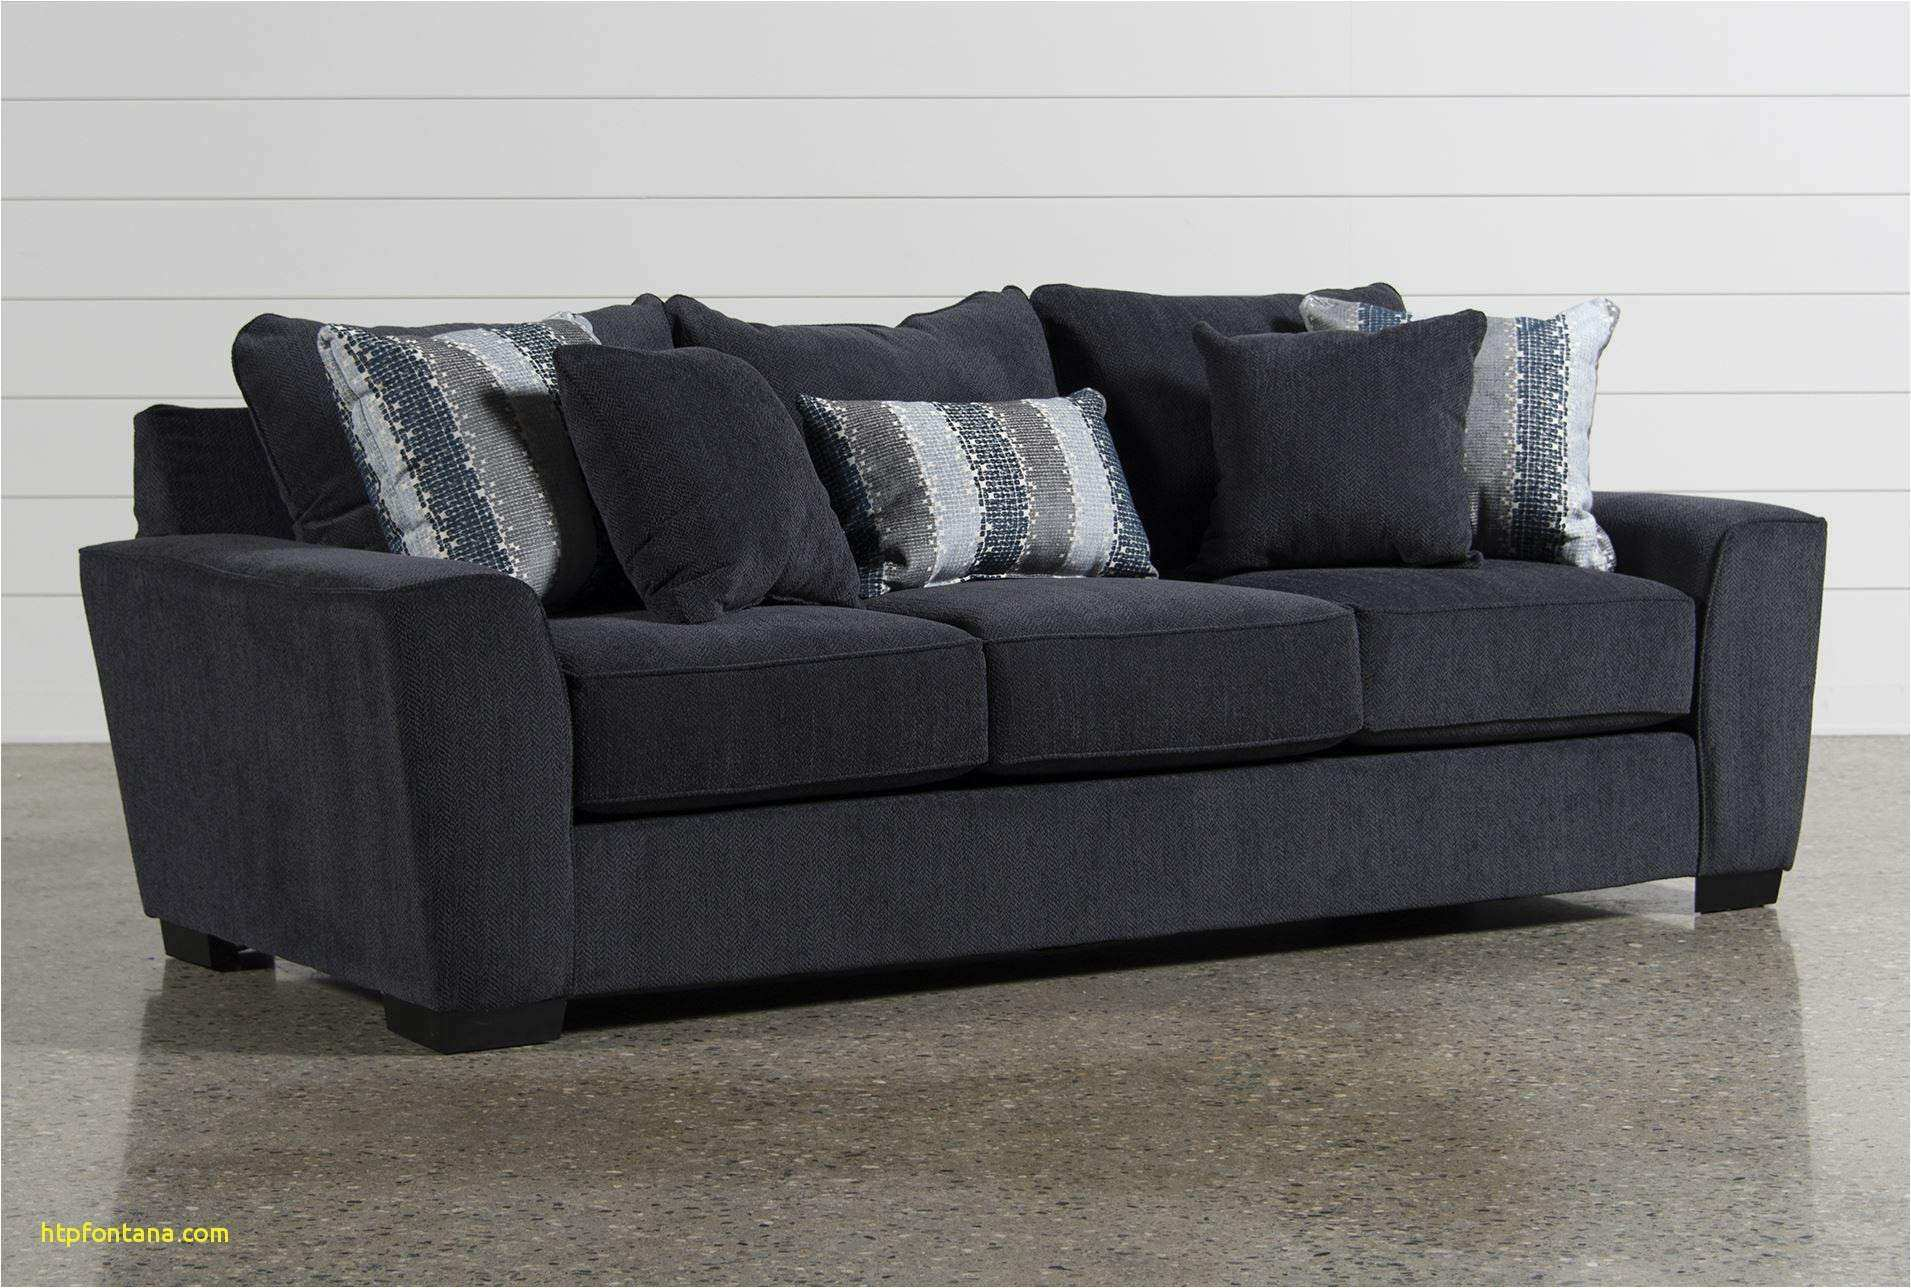 Living Room Modern Design New Outdoor Couches Ideas Wicker sofa 0d